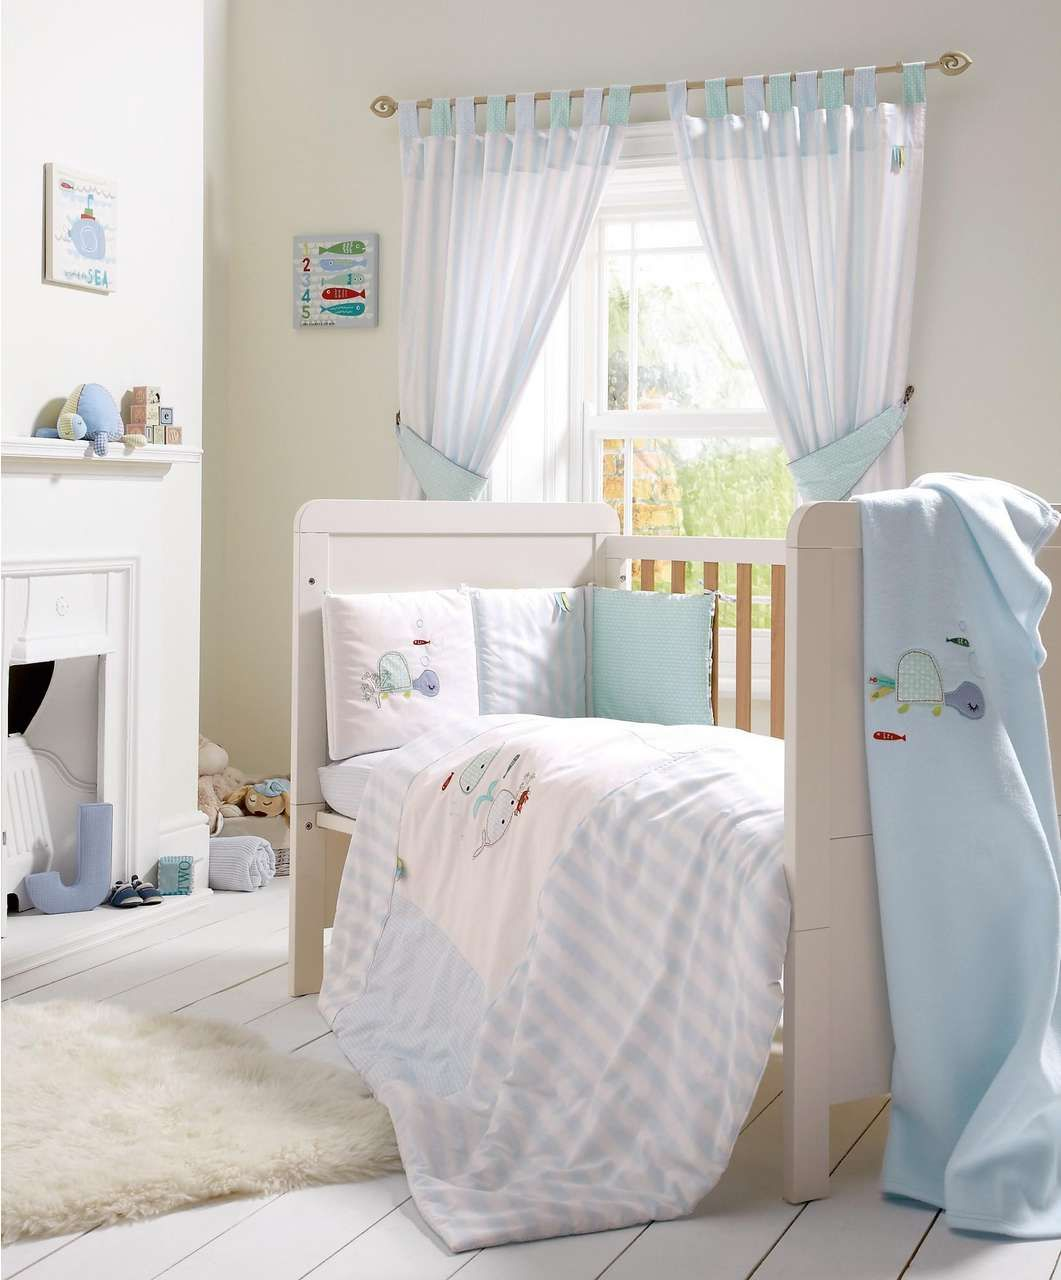 Bubble Blue 5 Piece Cot Cotbed Bedding Curtains Set Bubble Blue Mamas Papas Baby Blue Bedding Blue Bedding Baby Nursery Bedding